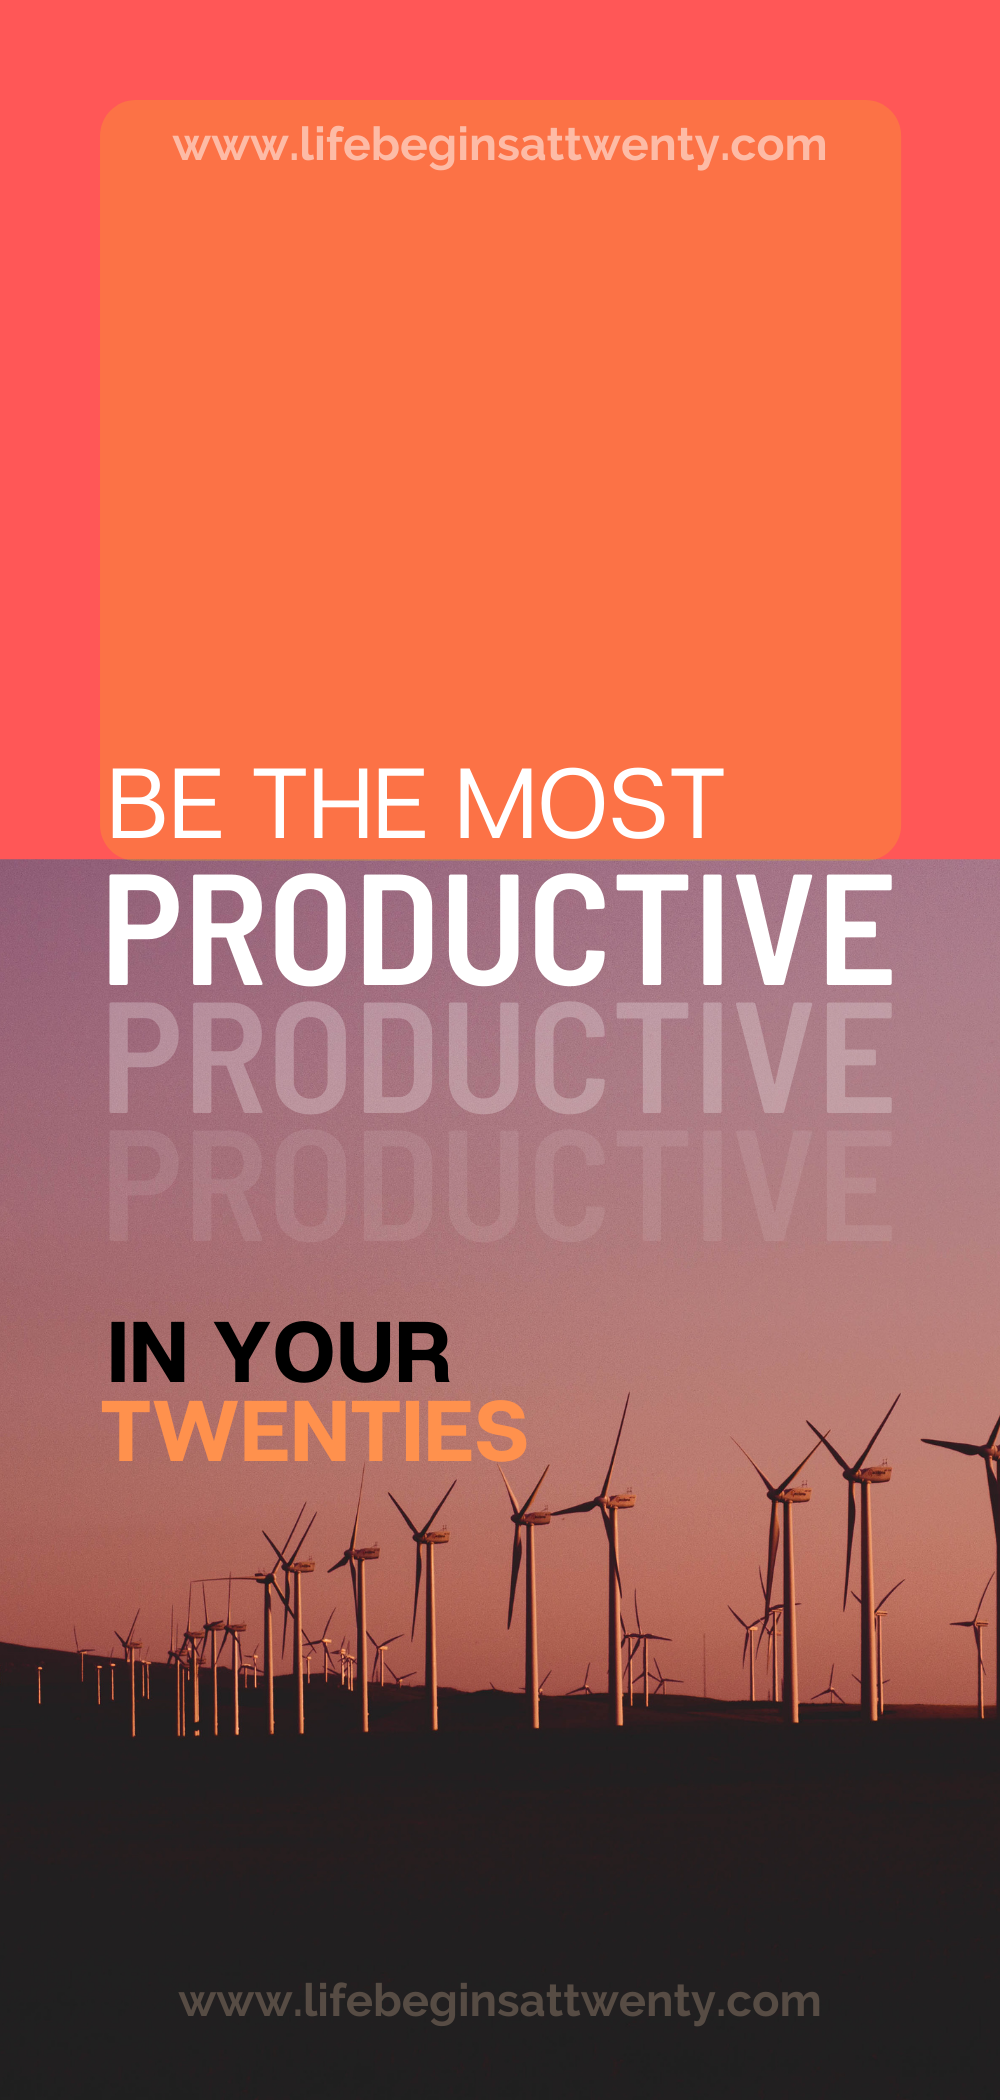 be the most productive in your twenties